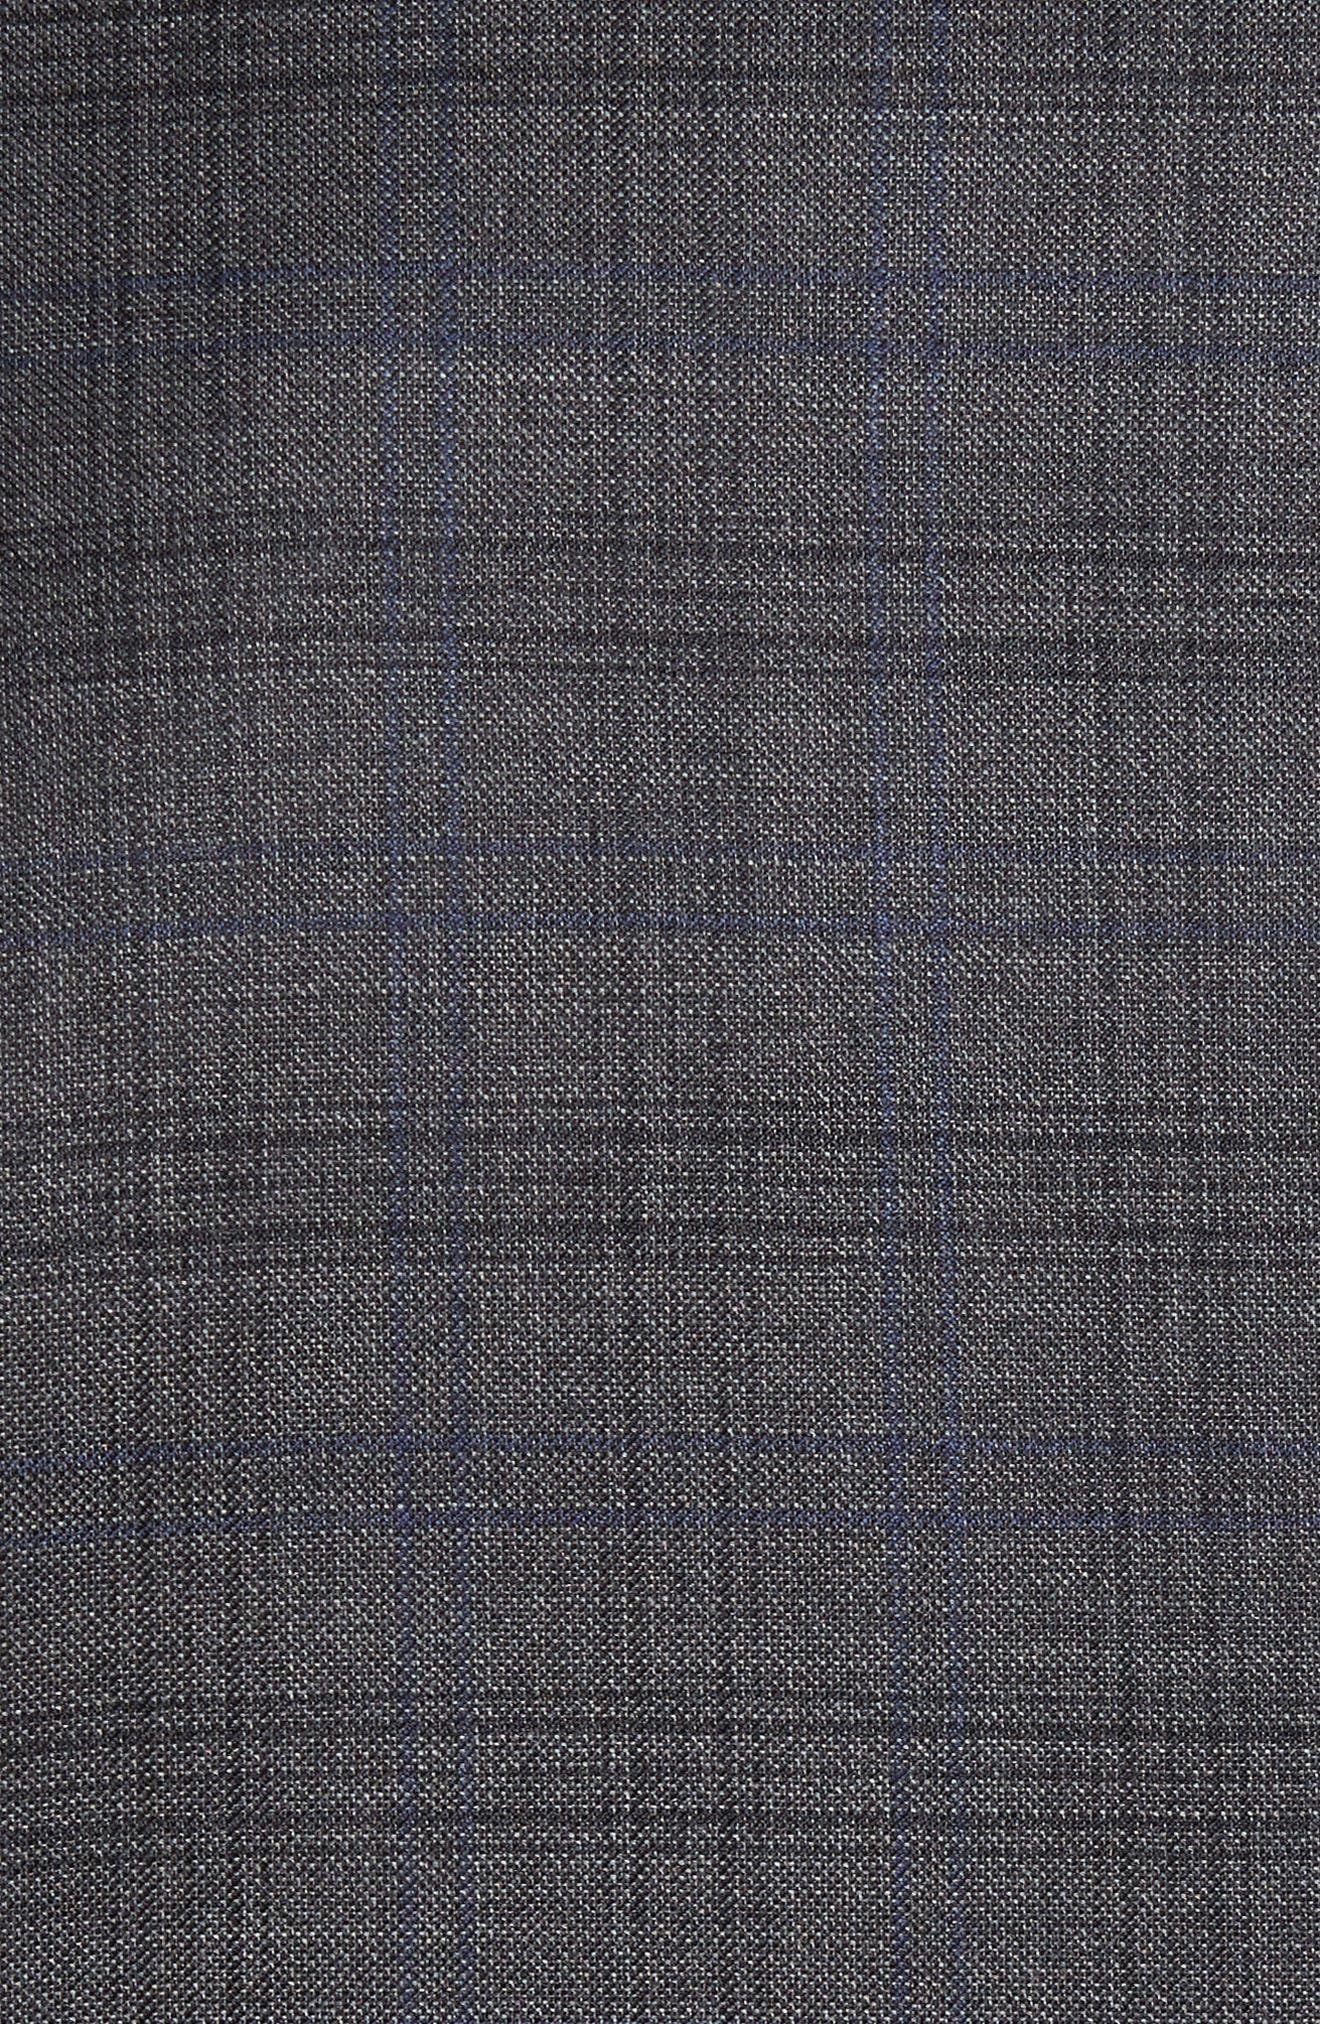 Alternate Image 5  - Todd Snyder White Label Sutton Trim Fit Plaid Wool Sport Coat